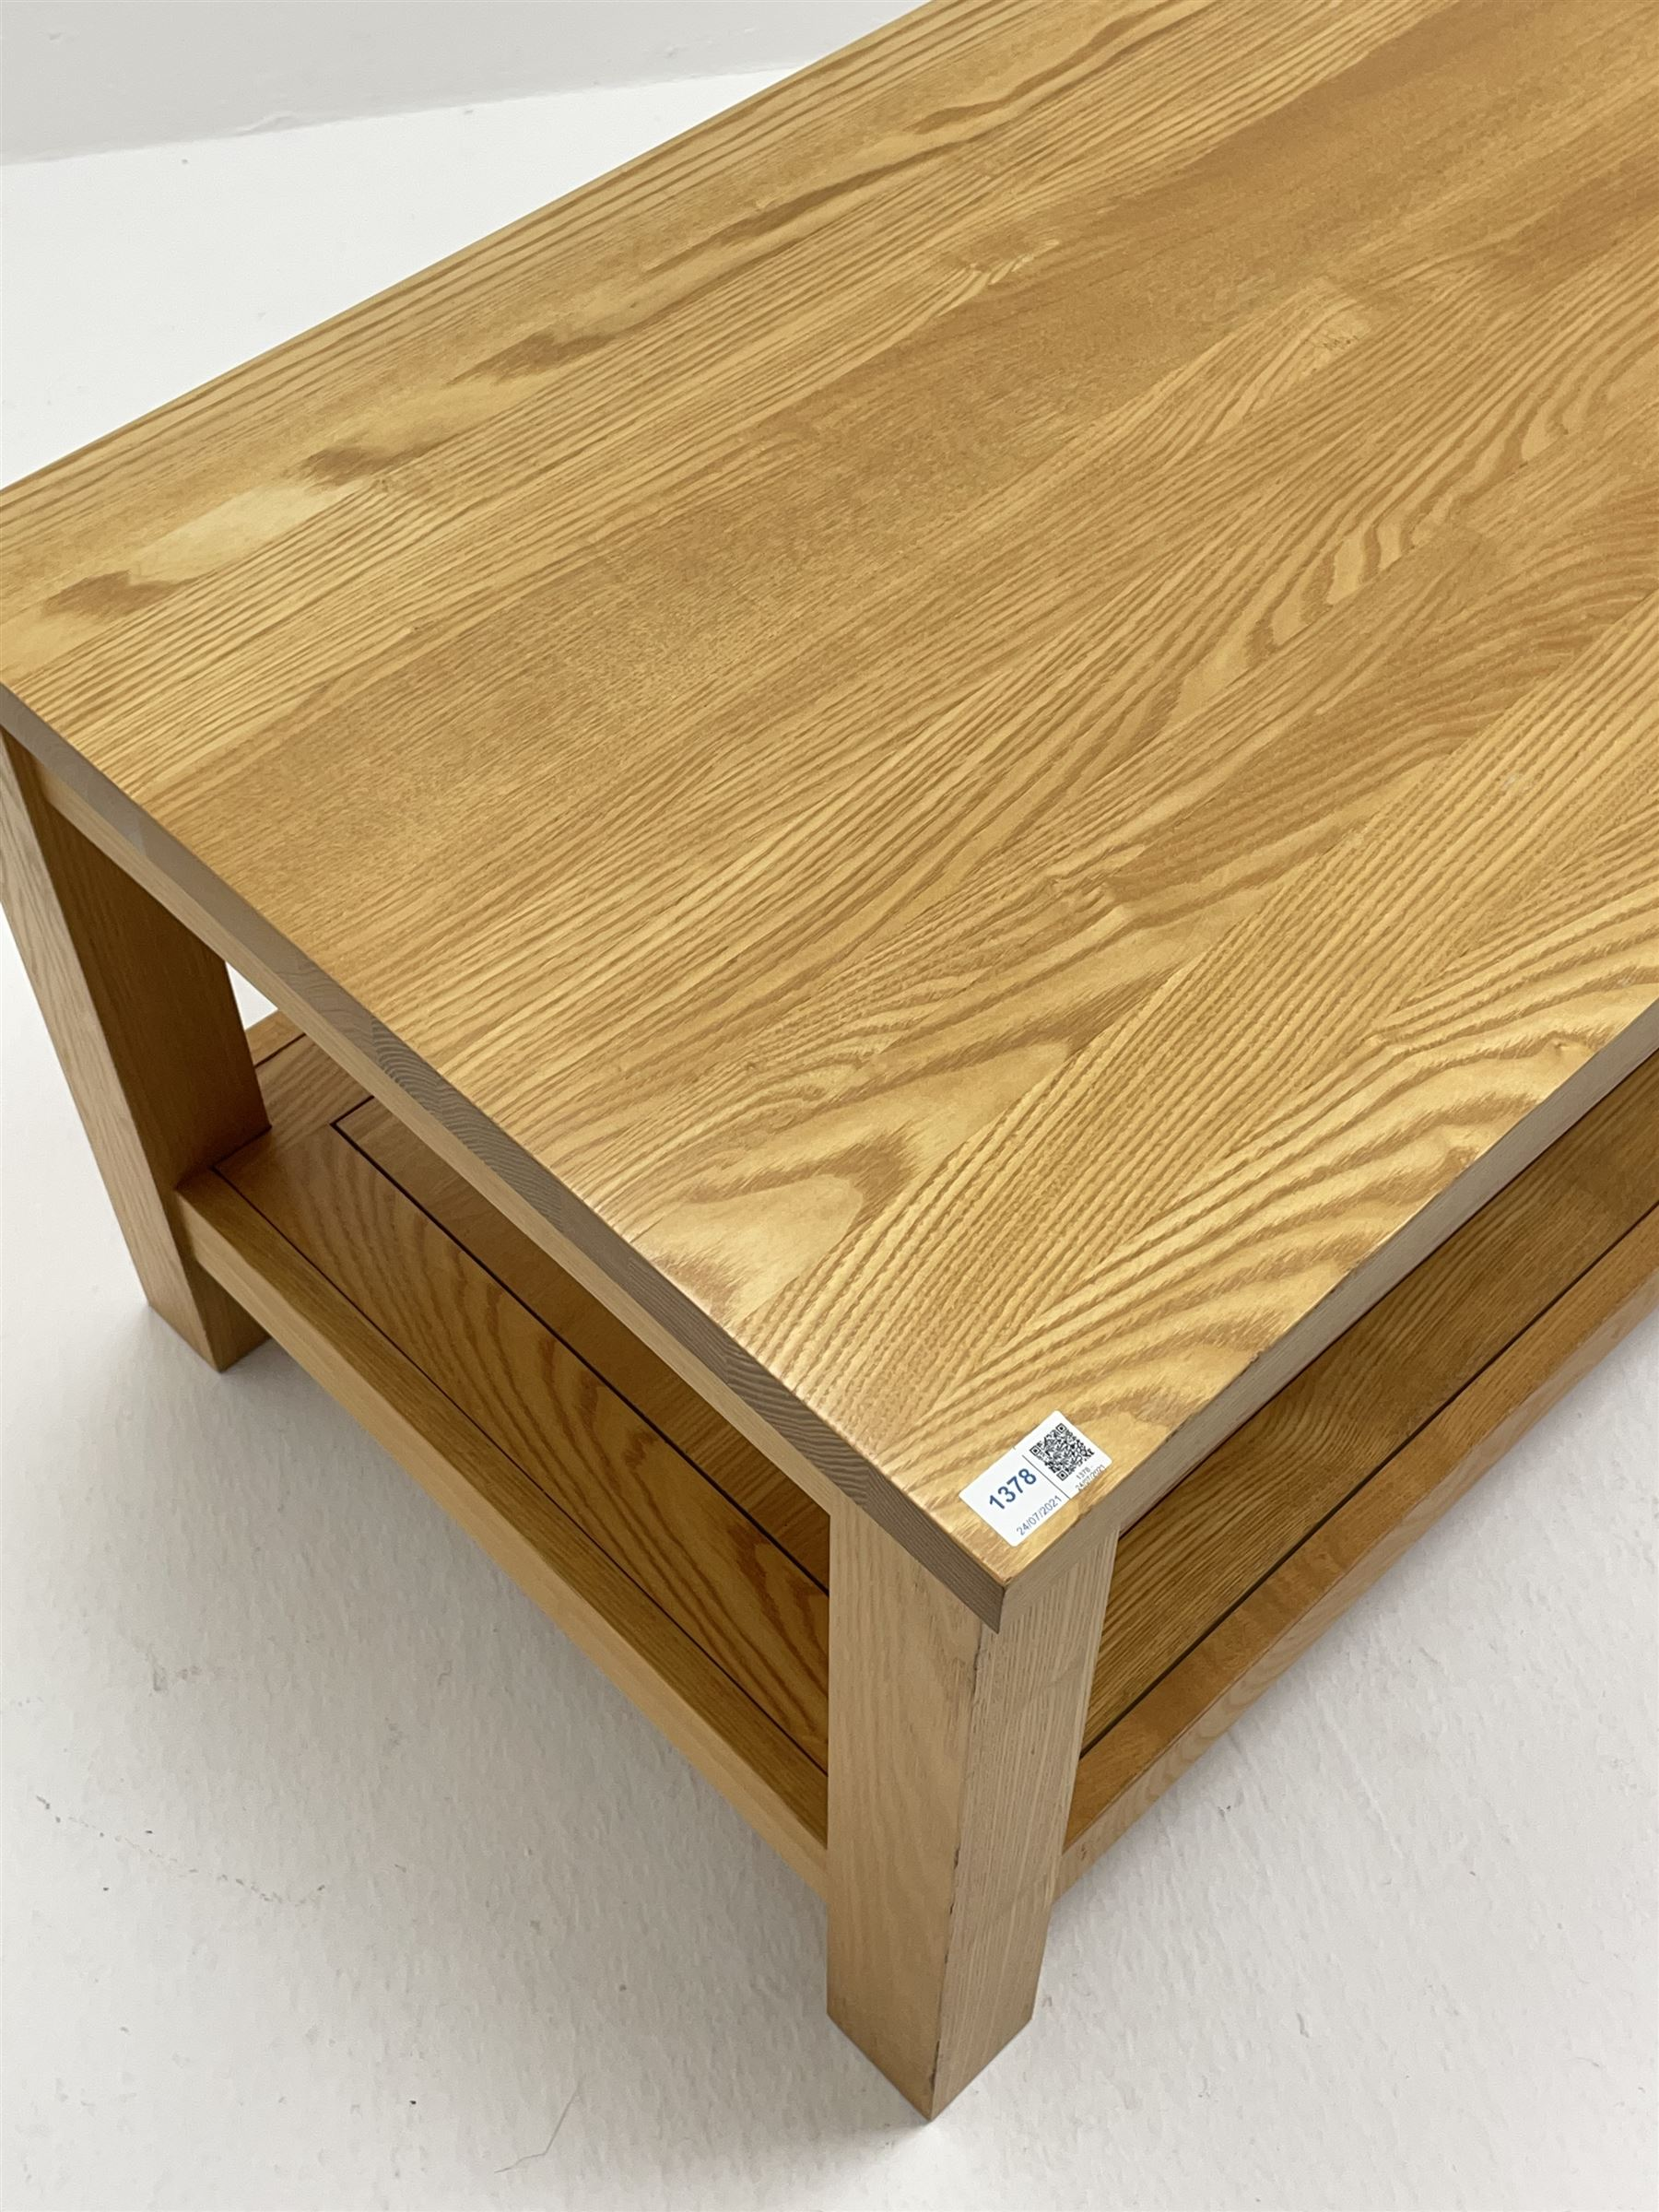 Light oak rectangular coffee table with undertier - Image 2 of 3